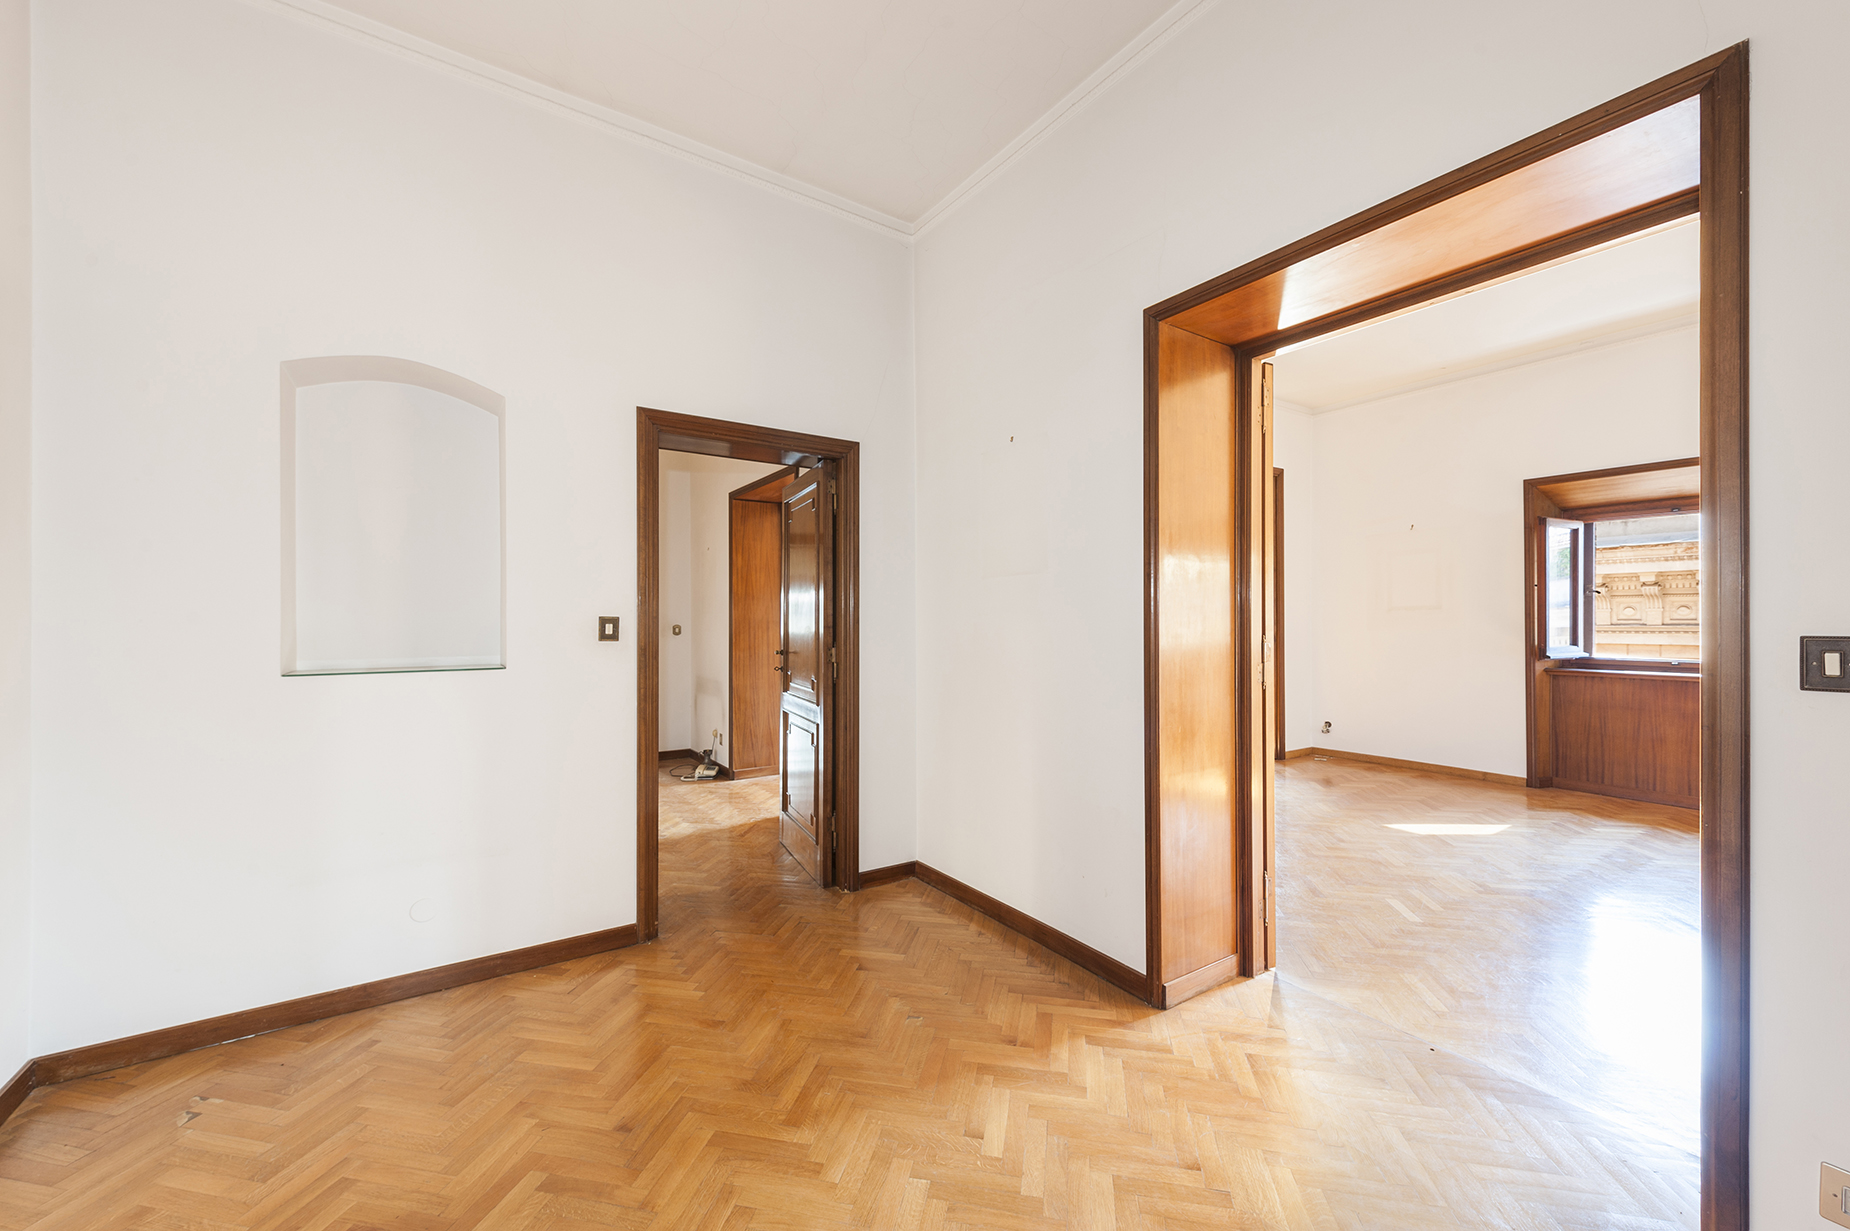 Property Of Bright apartment in the Sallustiano neighborhood